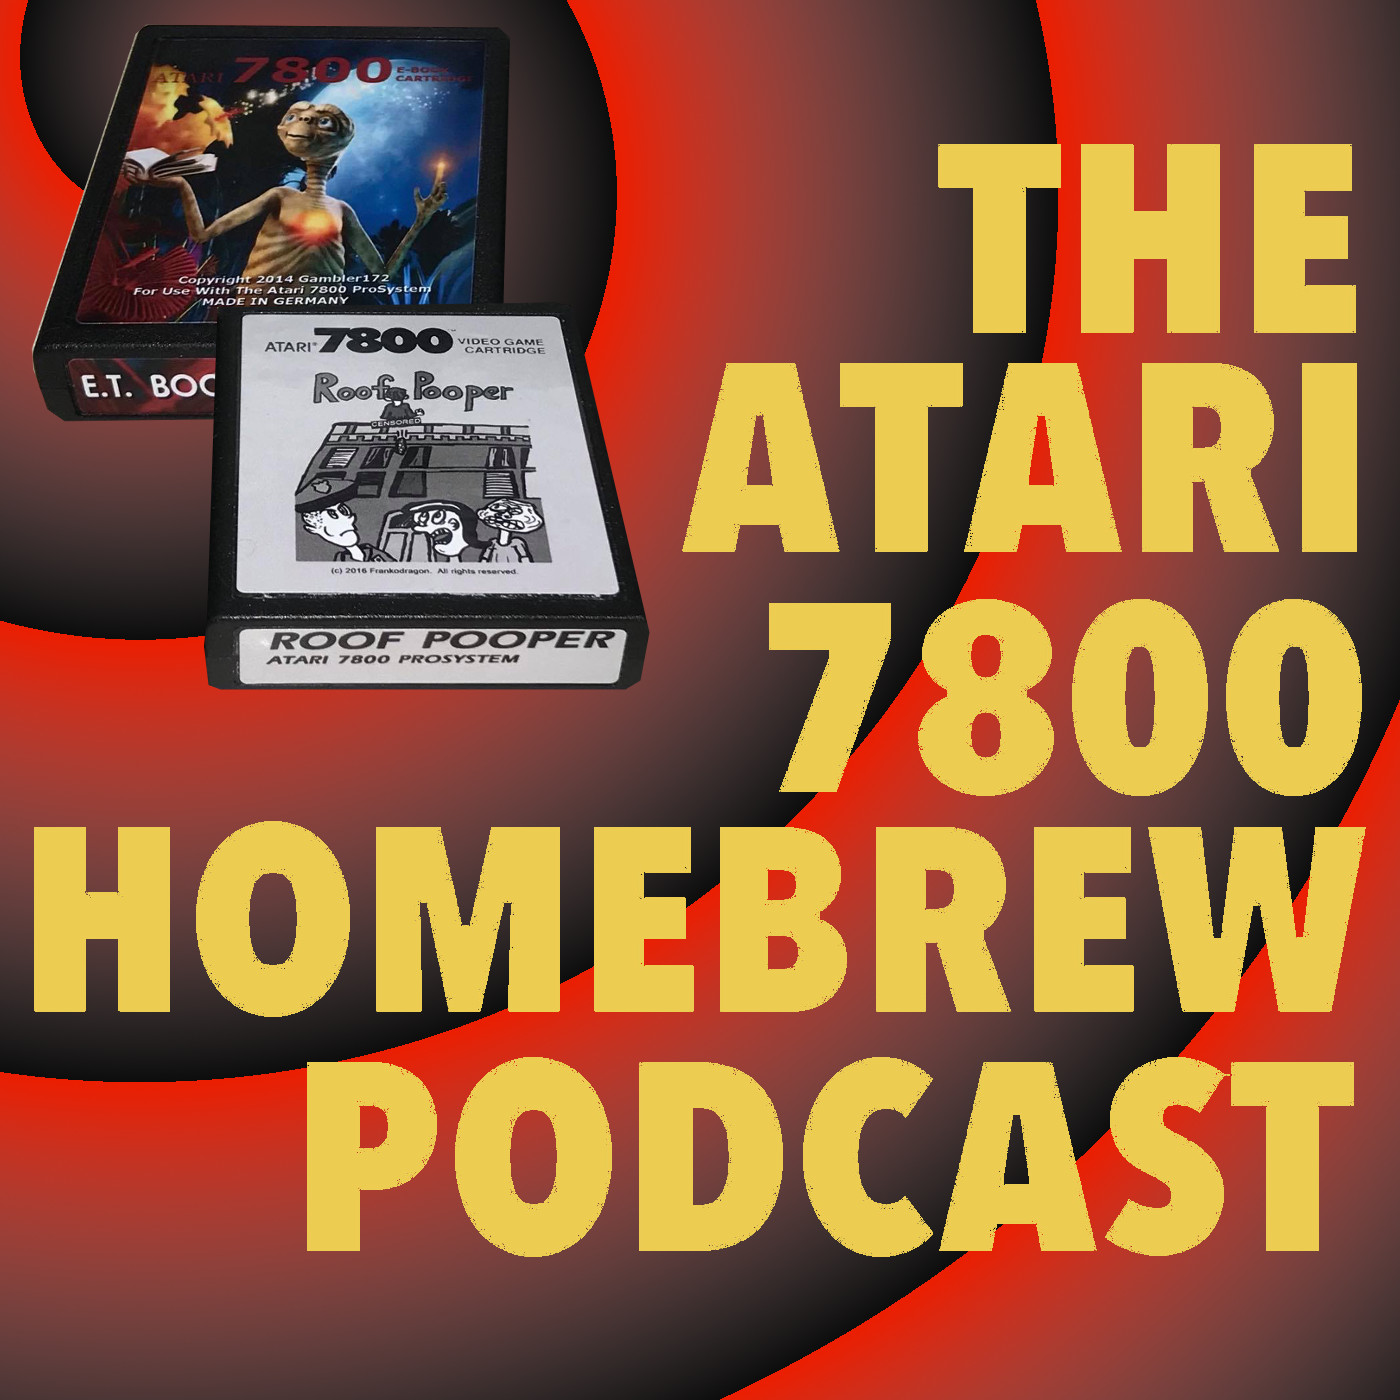 Episode 29: E.T. Book Cart 7800 and Roof Pooper